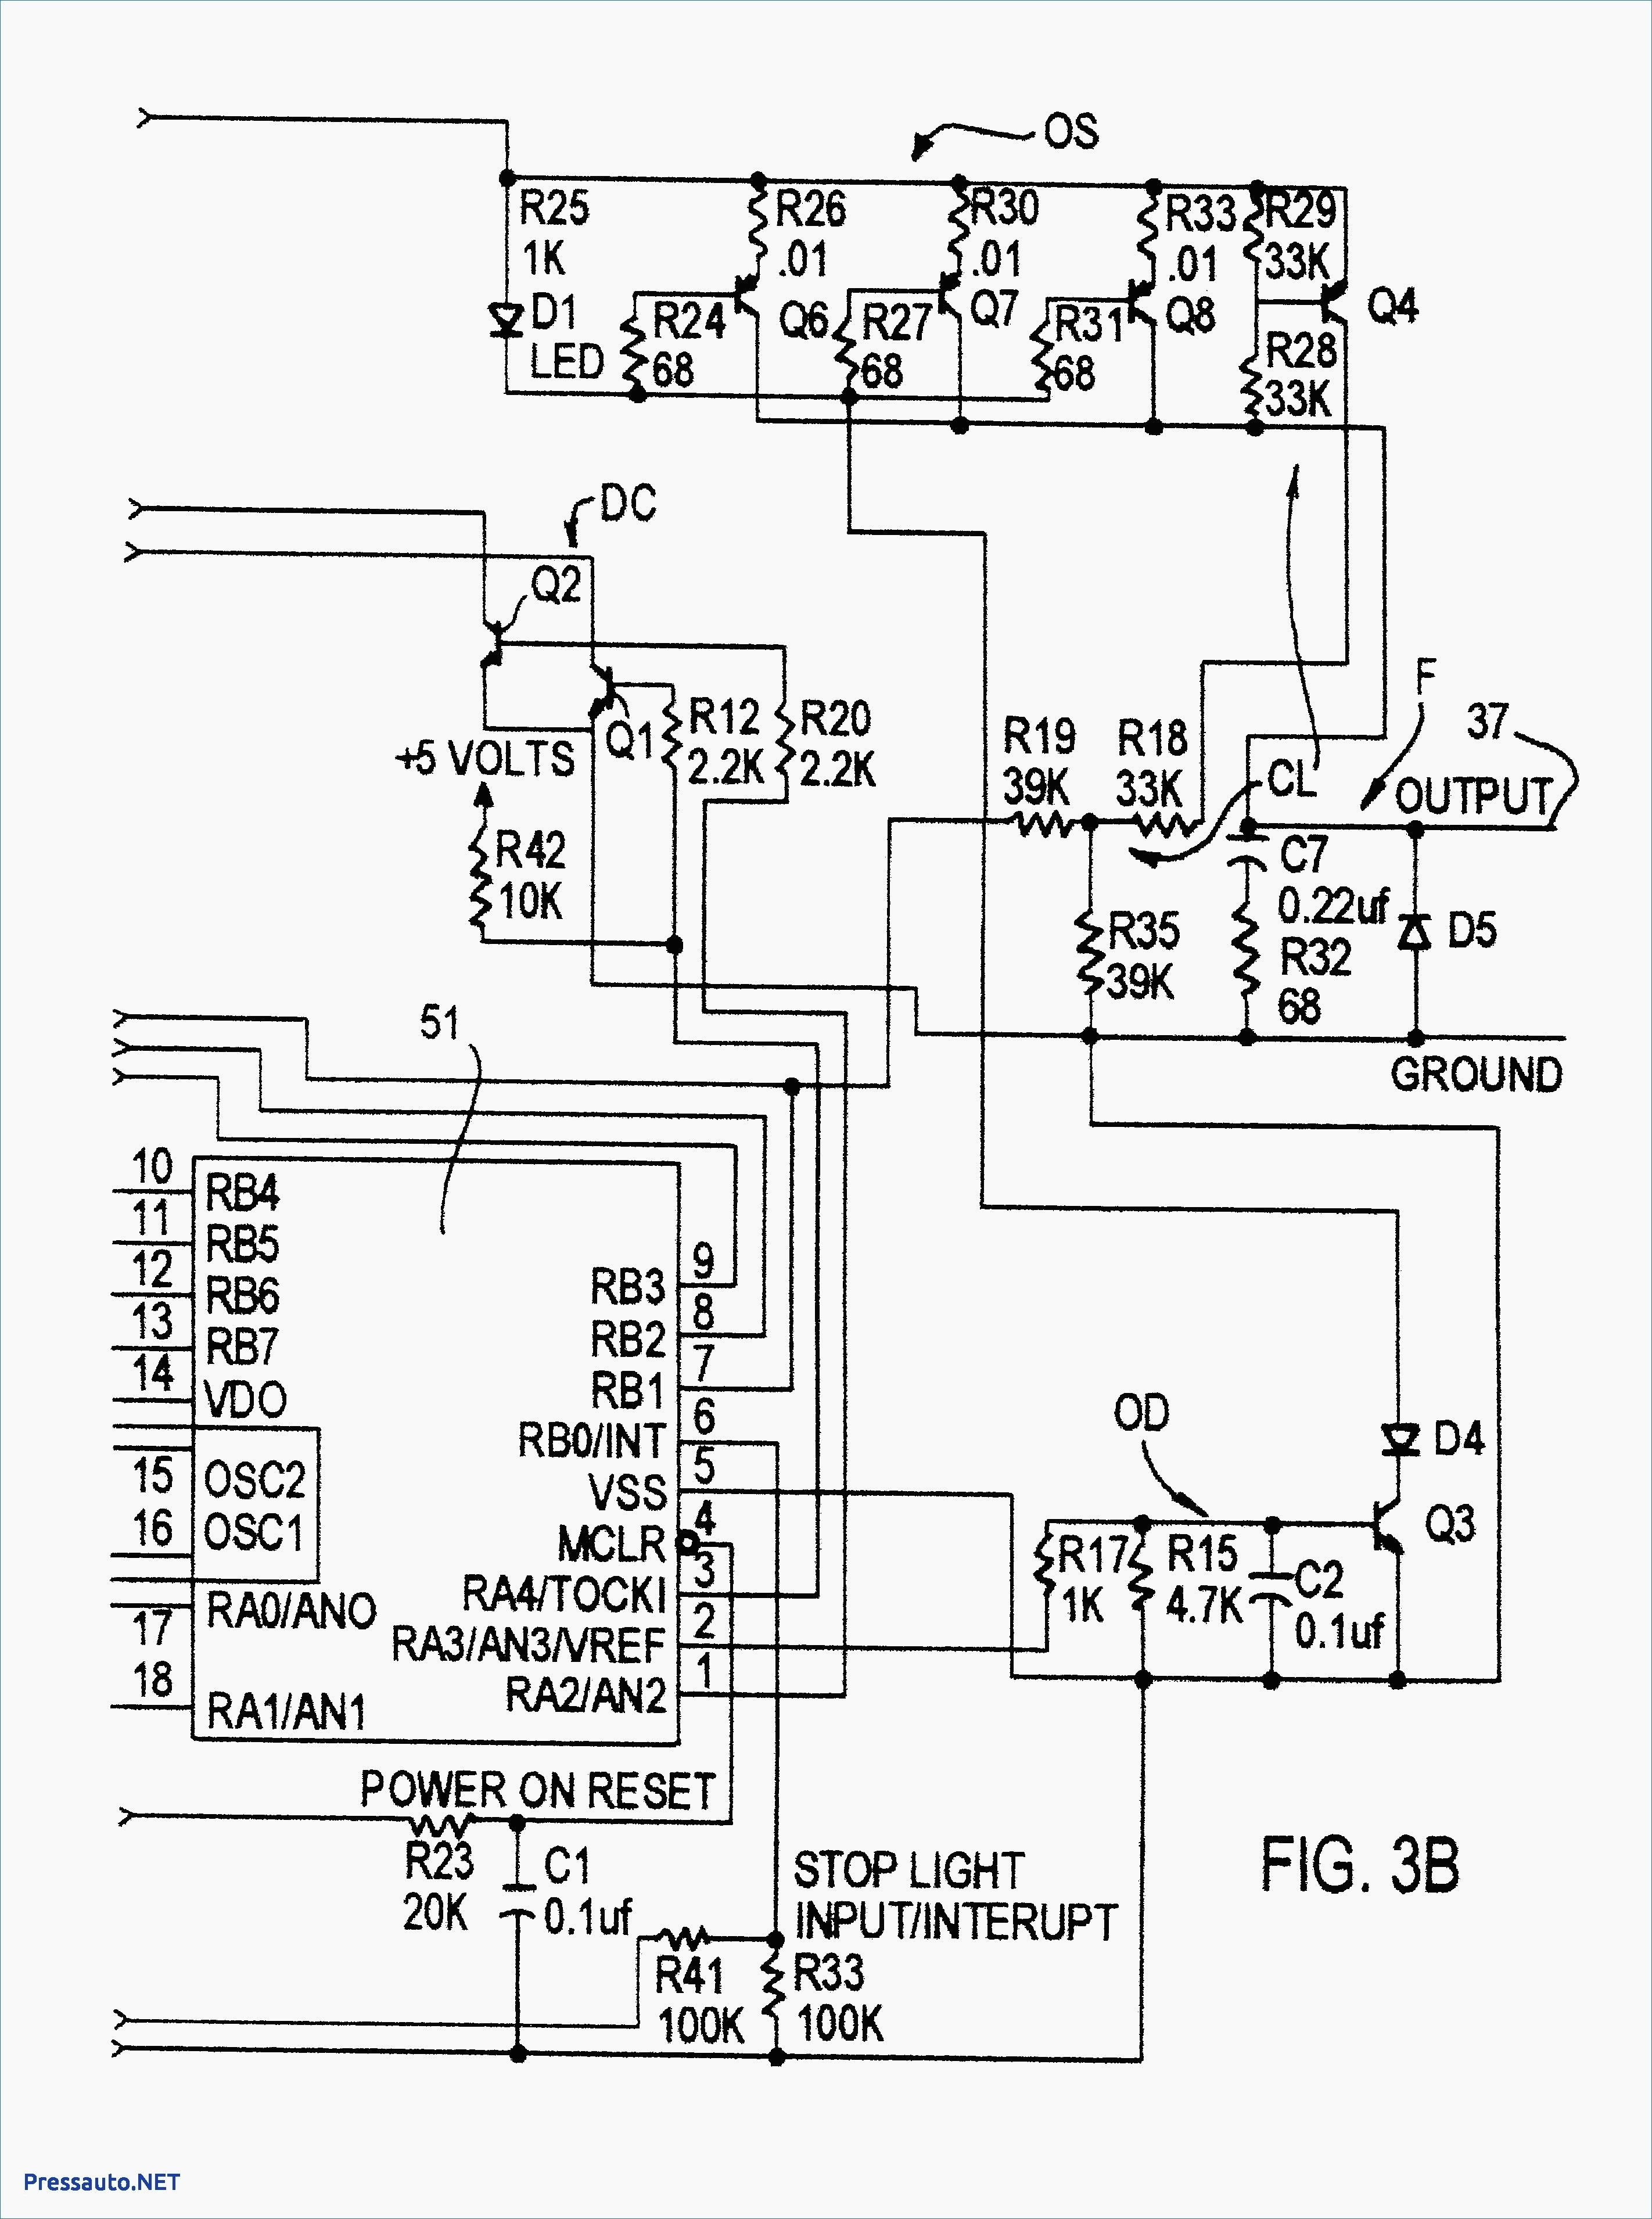 Wiring Diagram For 3 Way Switch With 4 Lights Bookingritzcarlton Info Trailer Wiring Diagram Diagram Electrical Diagram